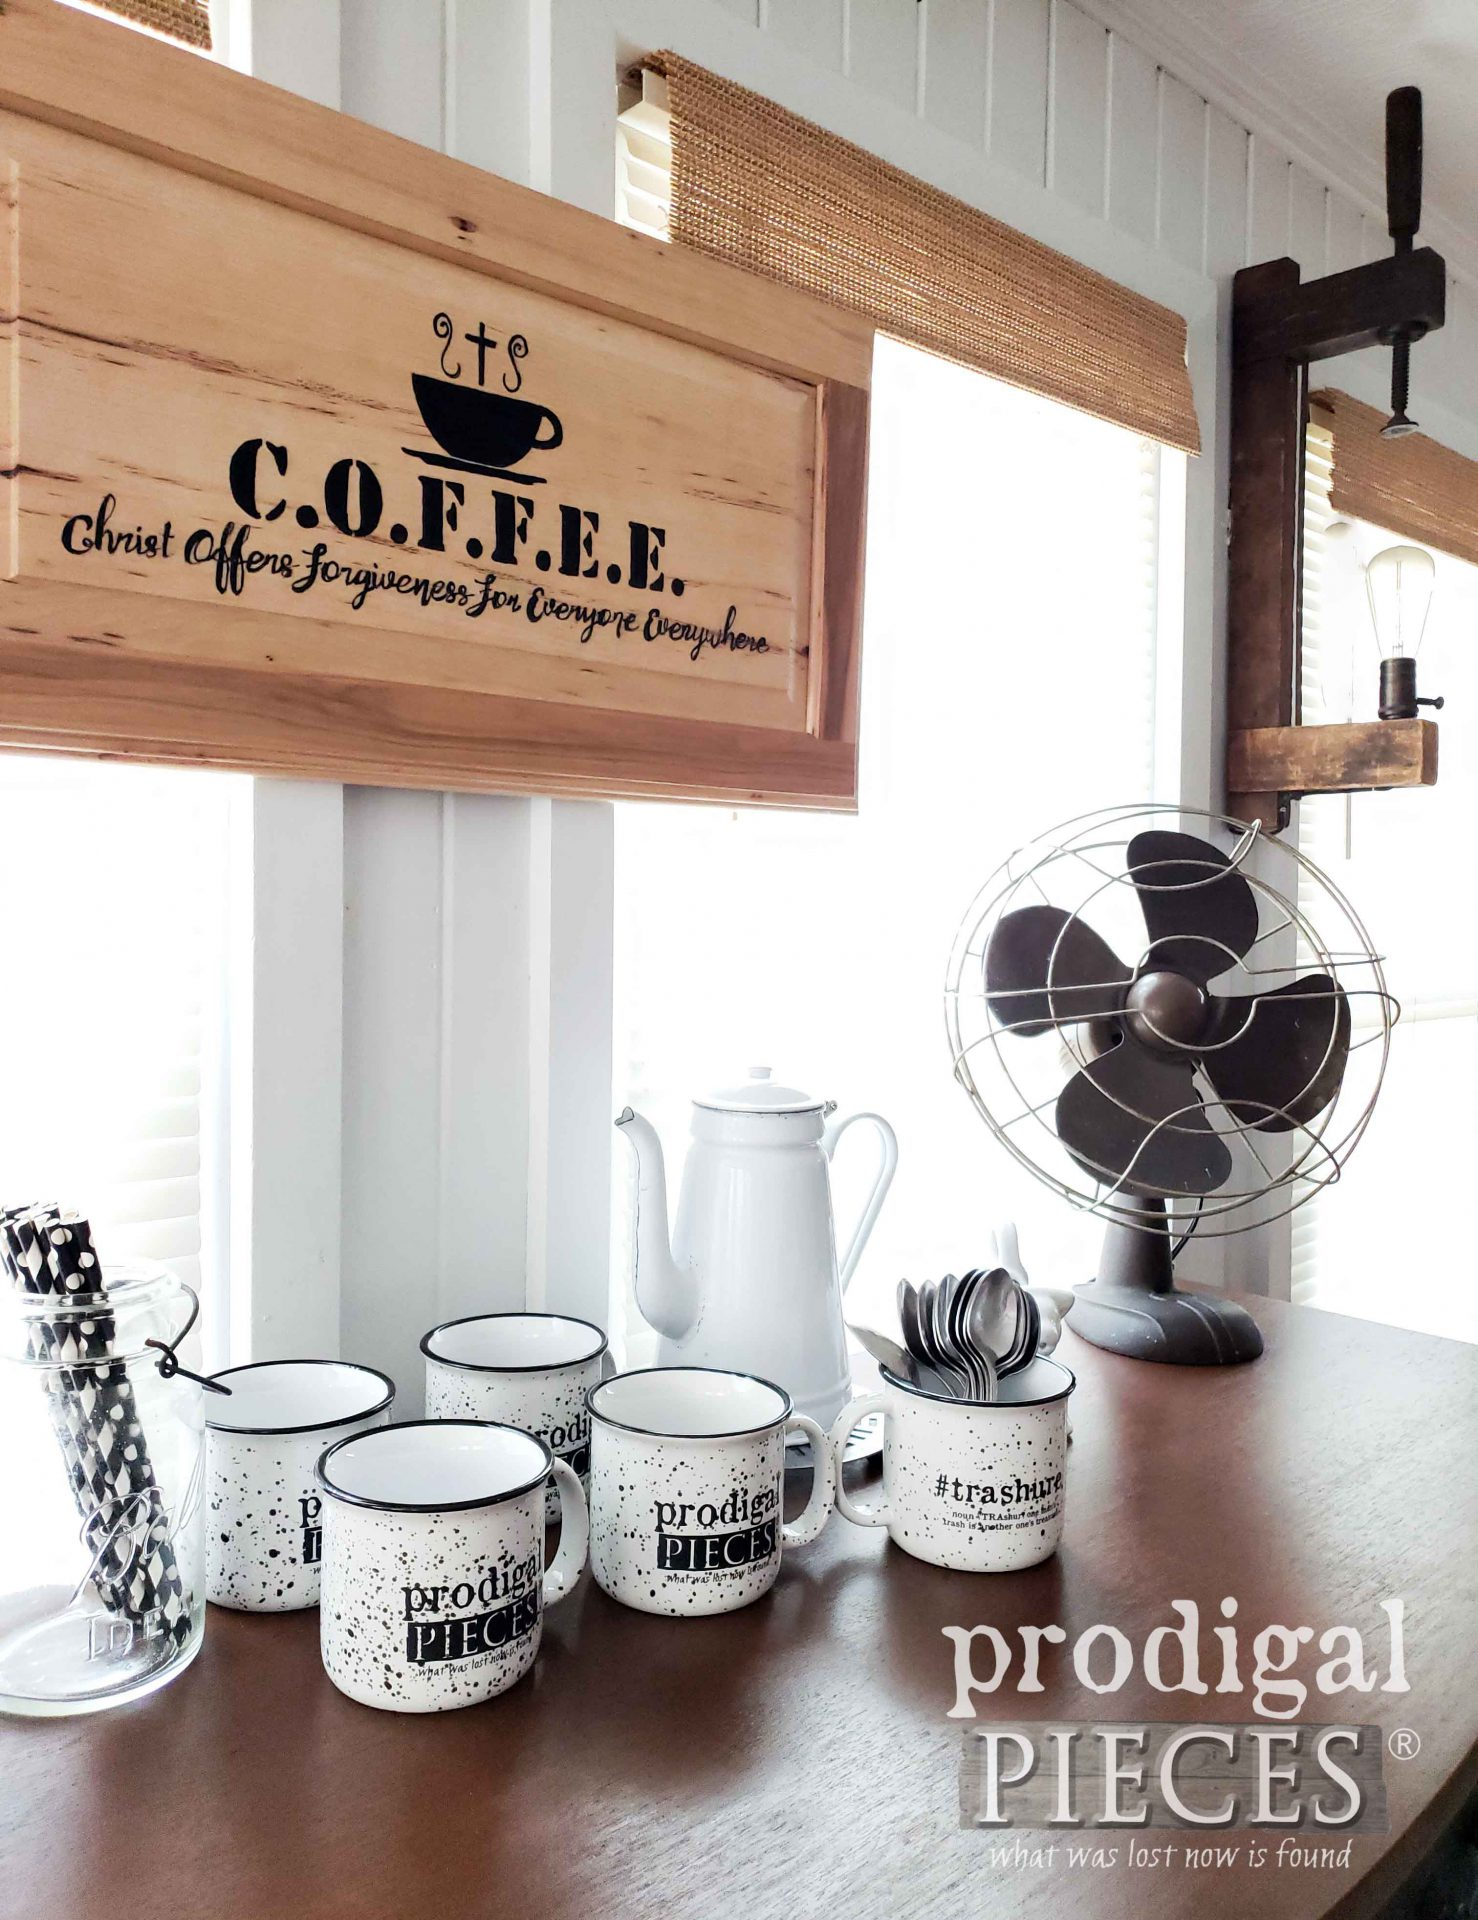 DIY Industrial Farmhouse Coffee Bar Created with Vintage Buffet by Larissa of Prodigal Pieces | prodigalpieces.com #prodigalpieces #diy #home #farmhouse #homedecor #furniture #coffee